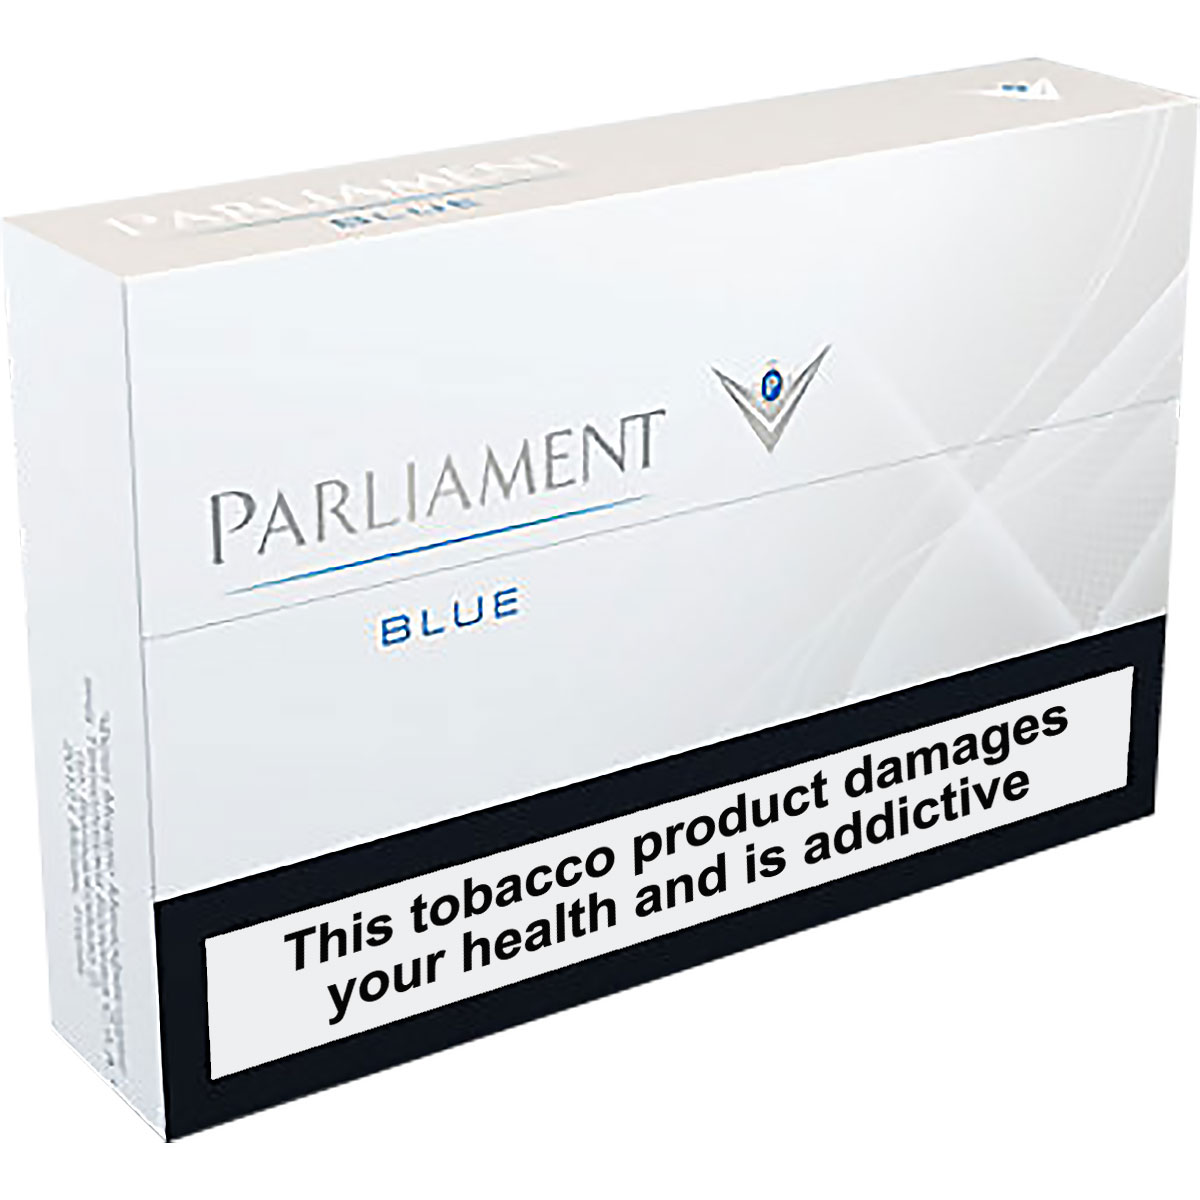 Parliament - Blue Limited Edition (1 pack)